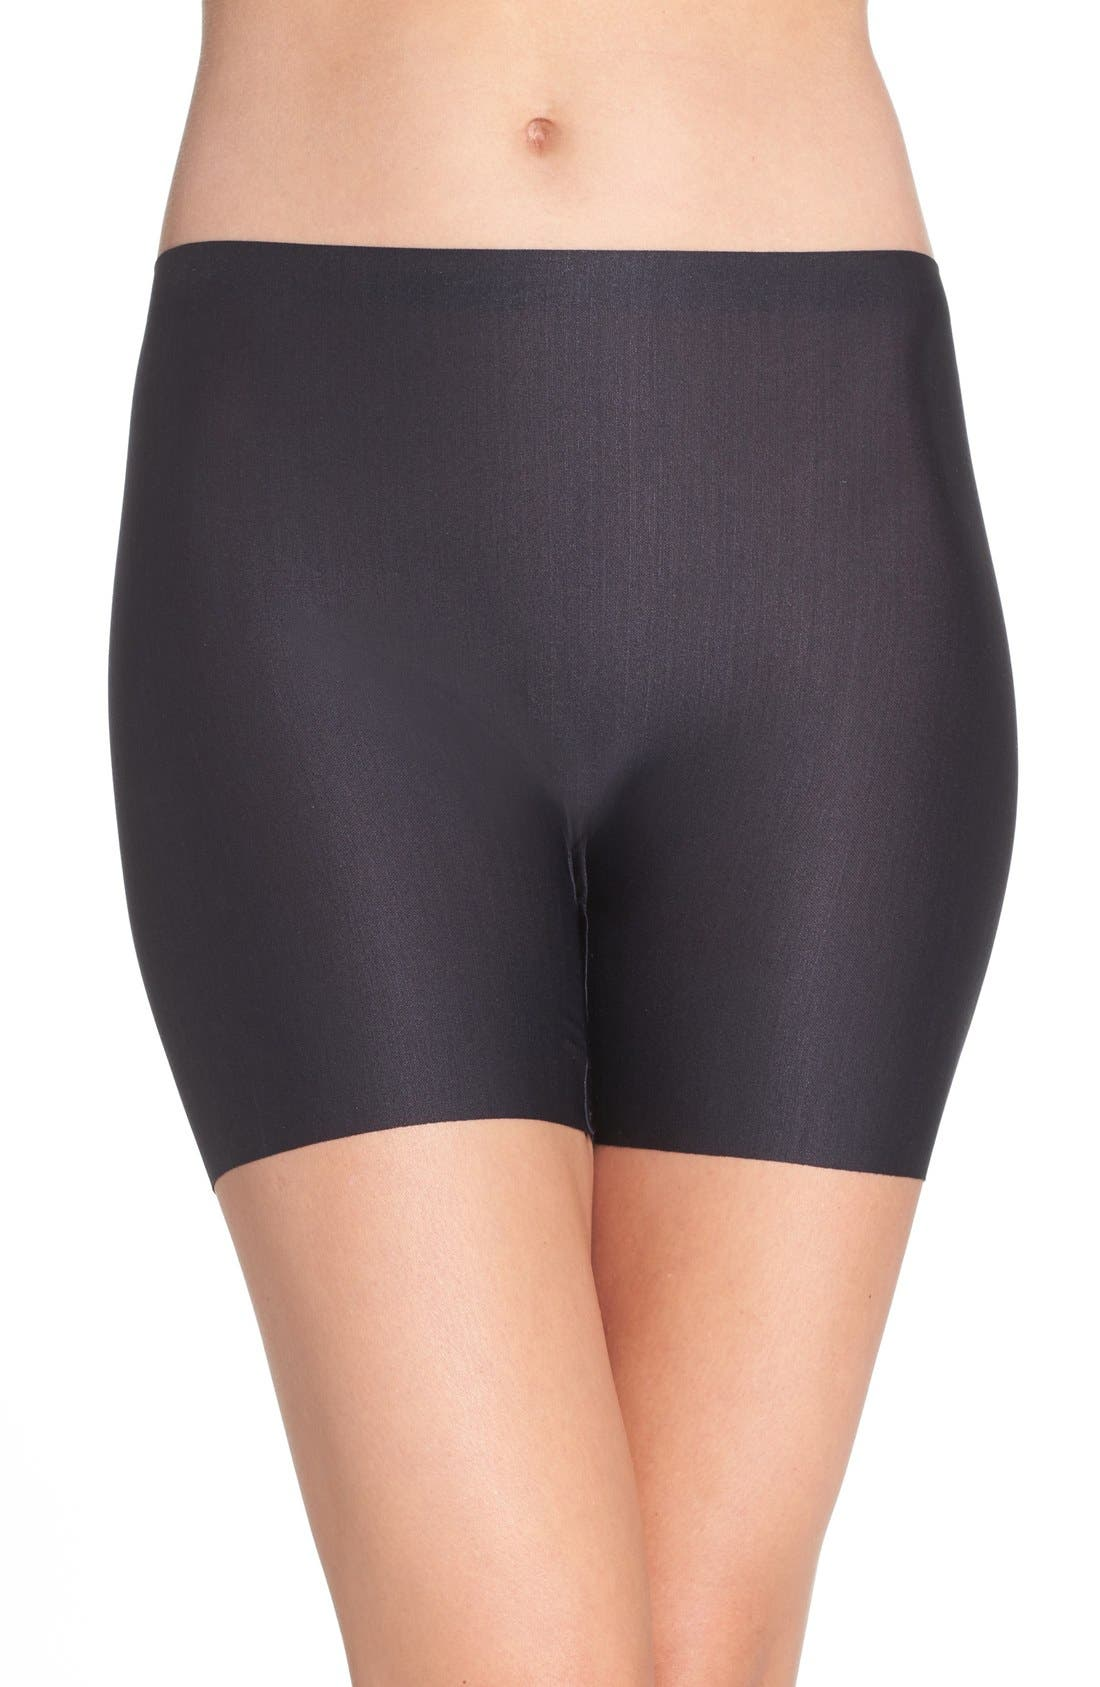 Wacoal Body Base Smoothing Shorts (2 for $48)